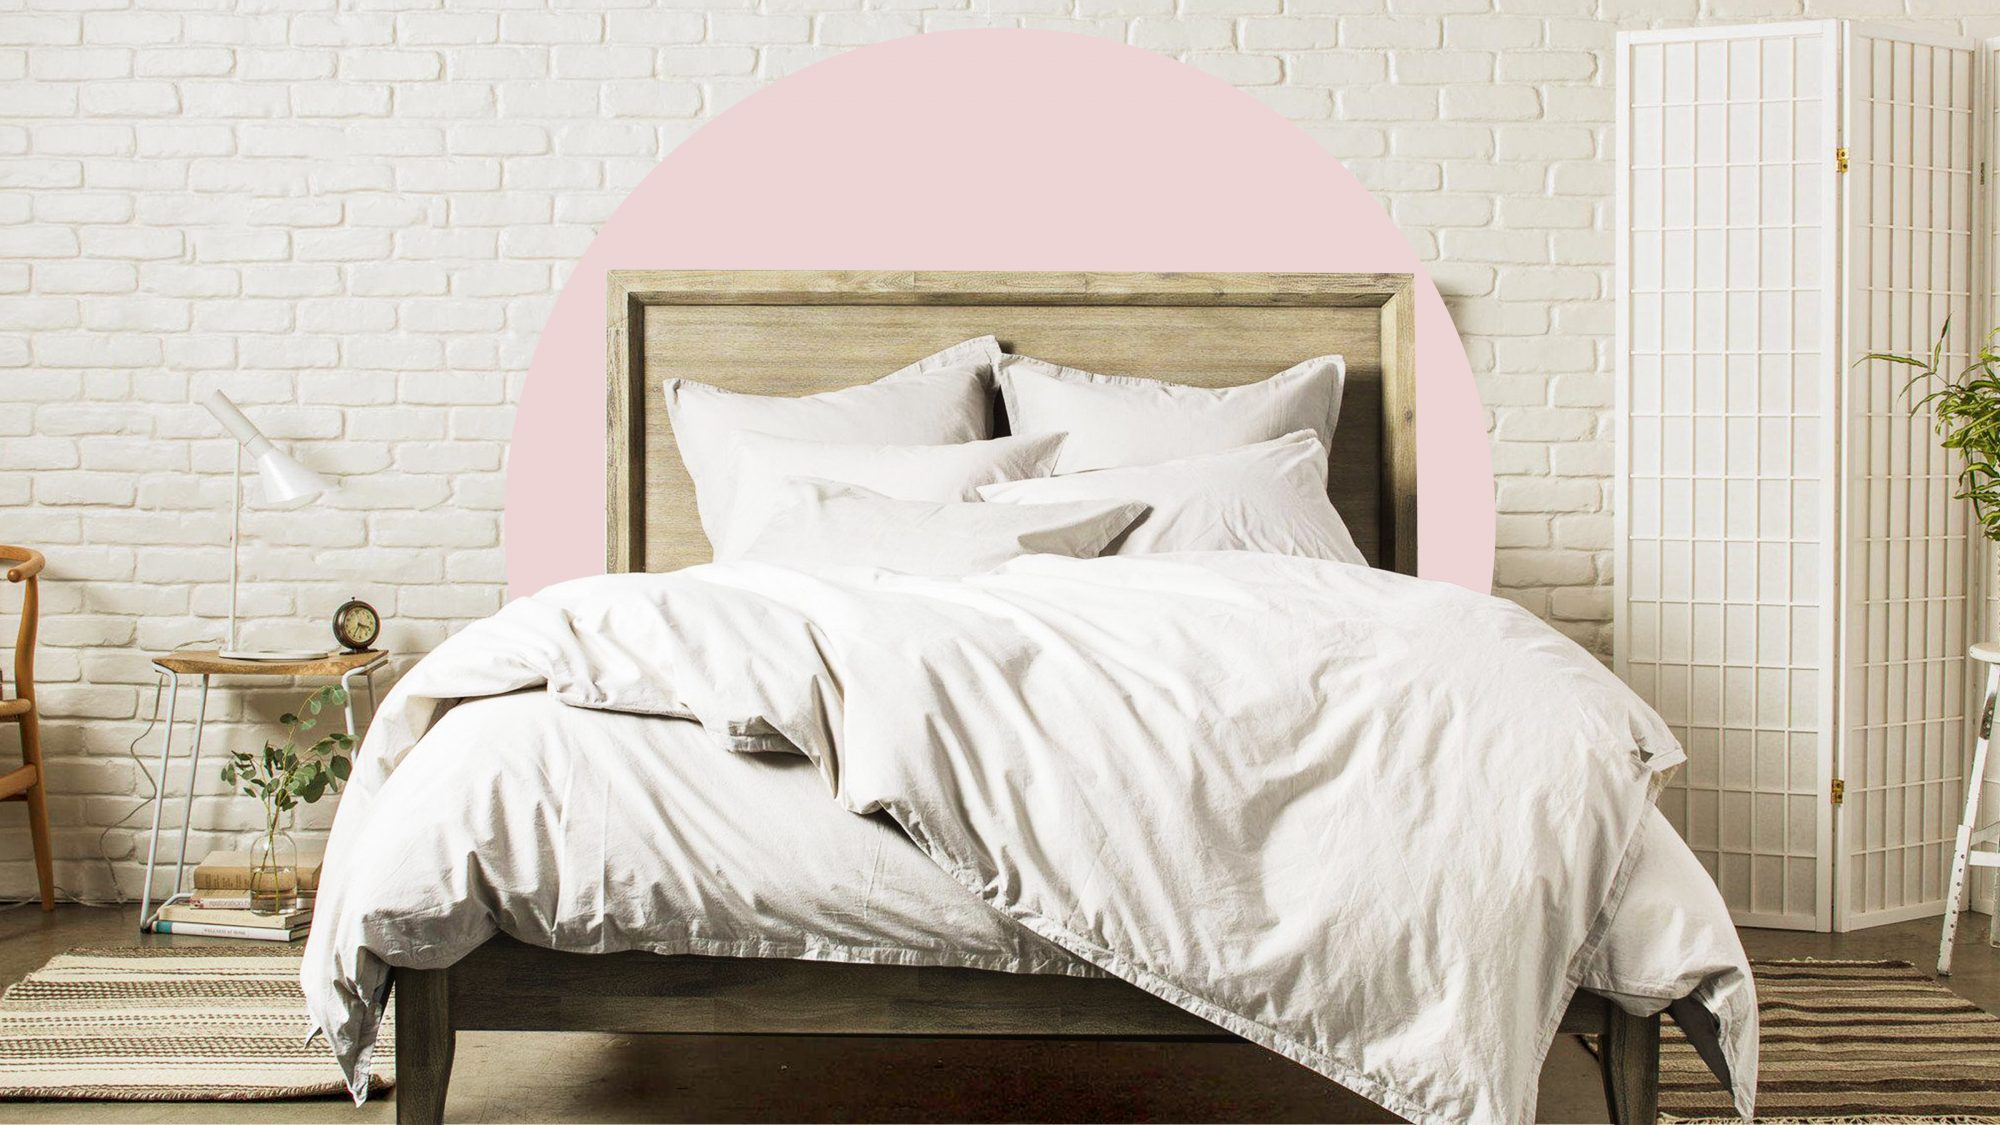 These-Cooling-Percale-Cotton-Sheets-With-1400-Five-Star-Ratings-Changed-How-I-Sleep-at-Night